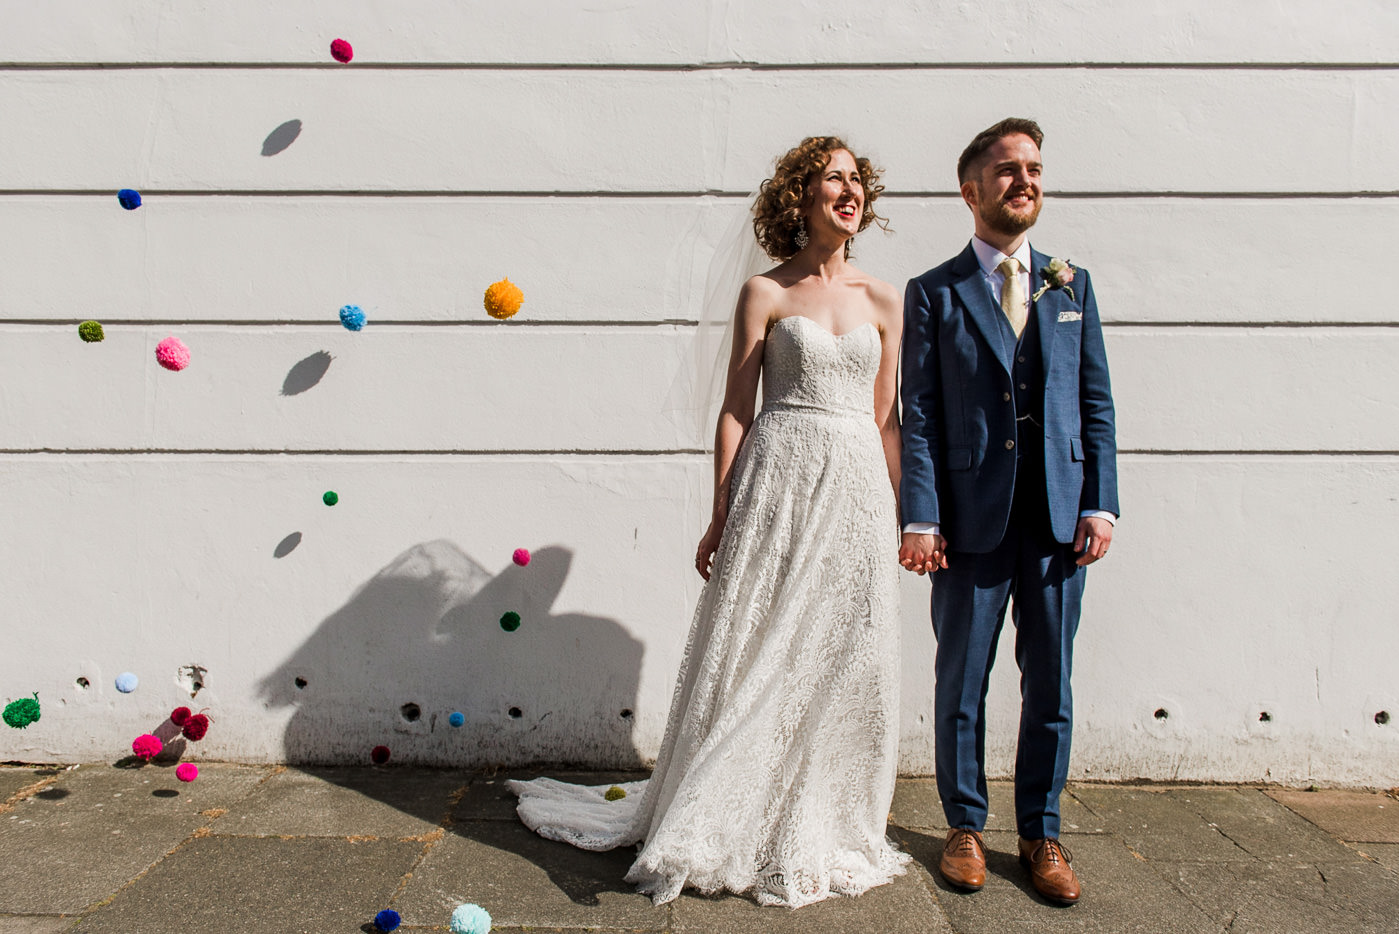 Creative wedding portrait alternative wedding photographer